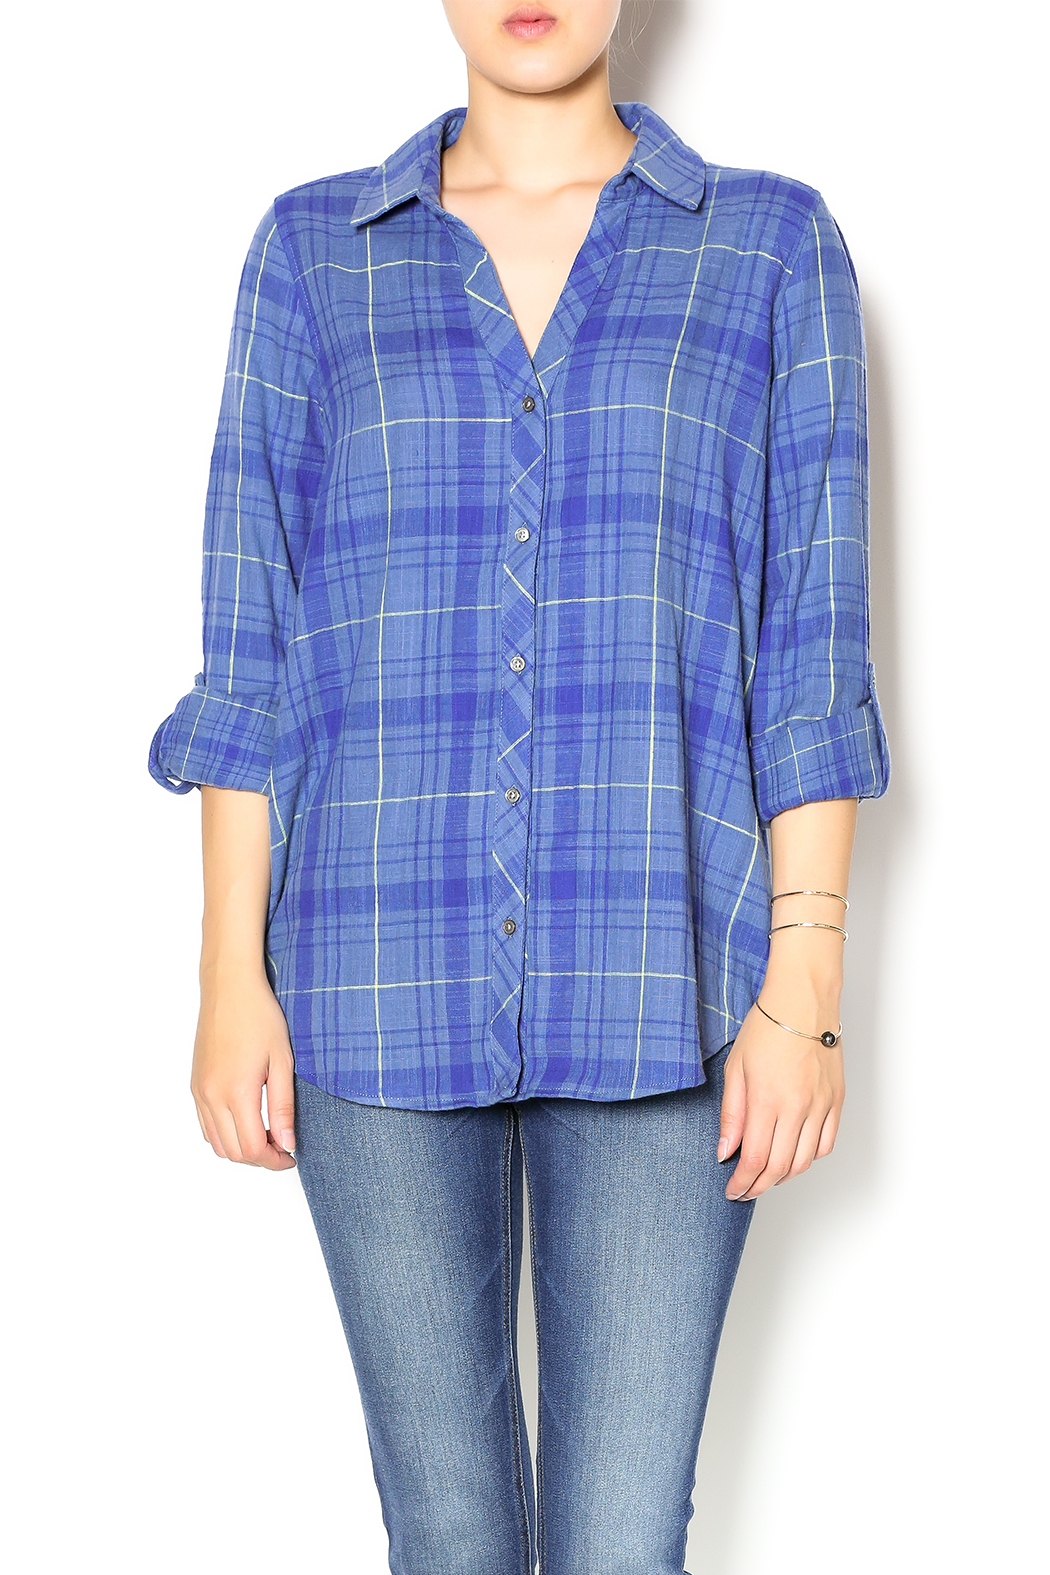 Soft joie daina plaid shirt from texas by laura 39 s line for Soft joie plaid shirt